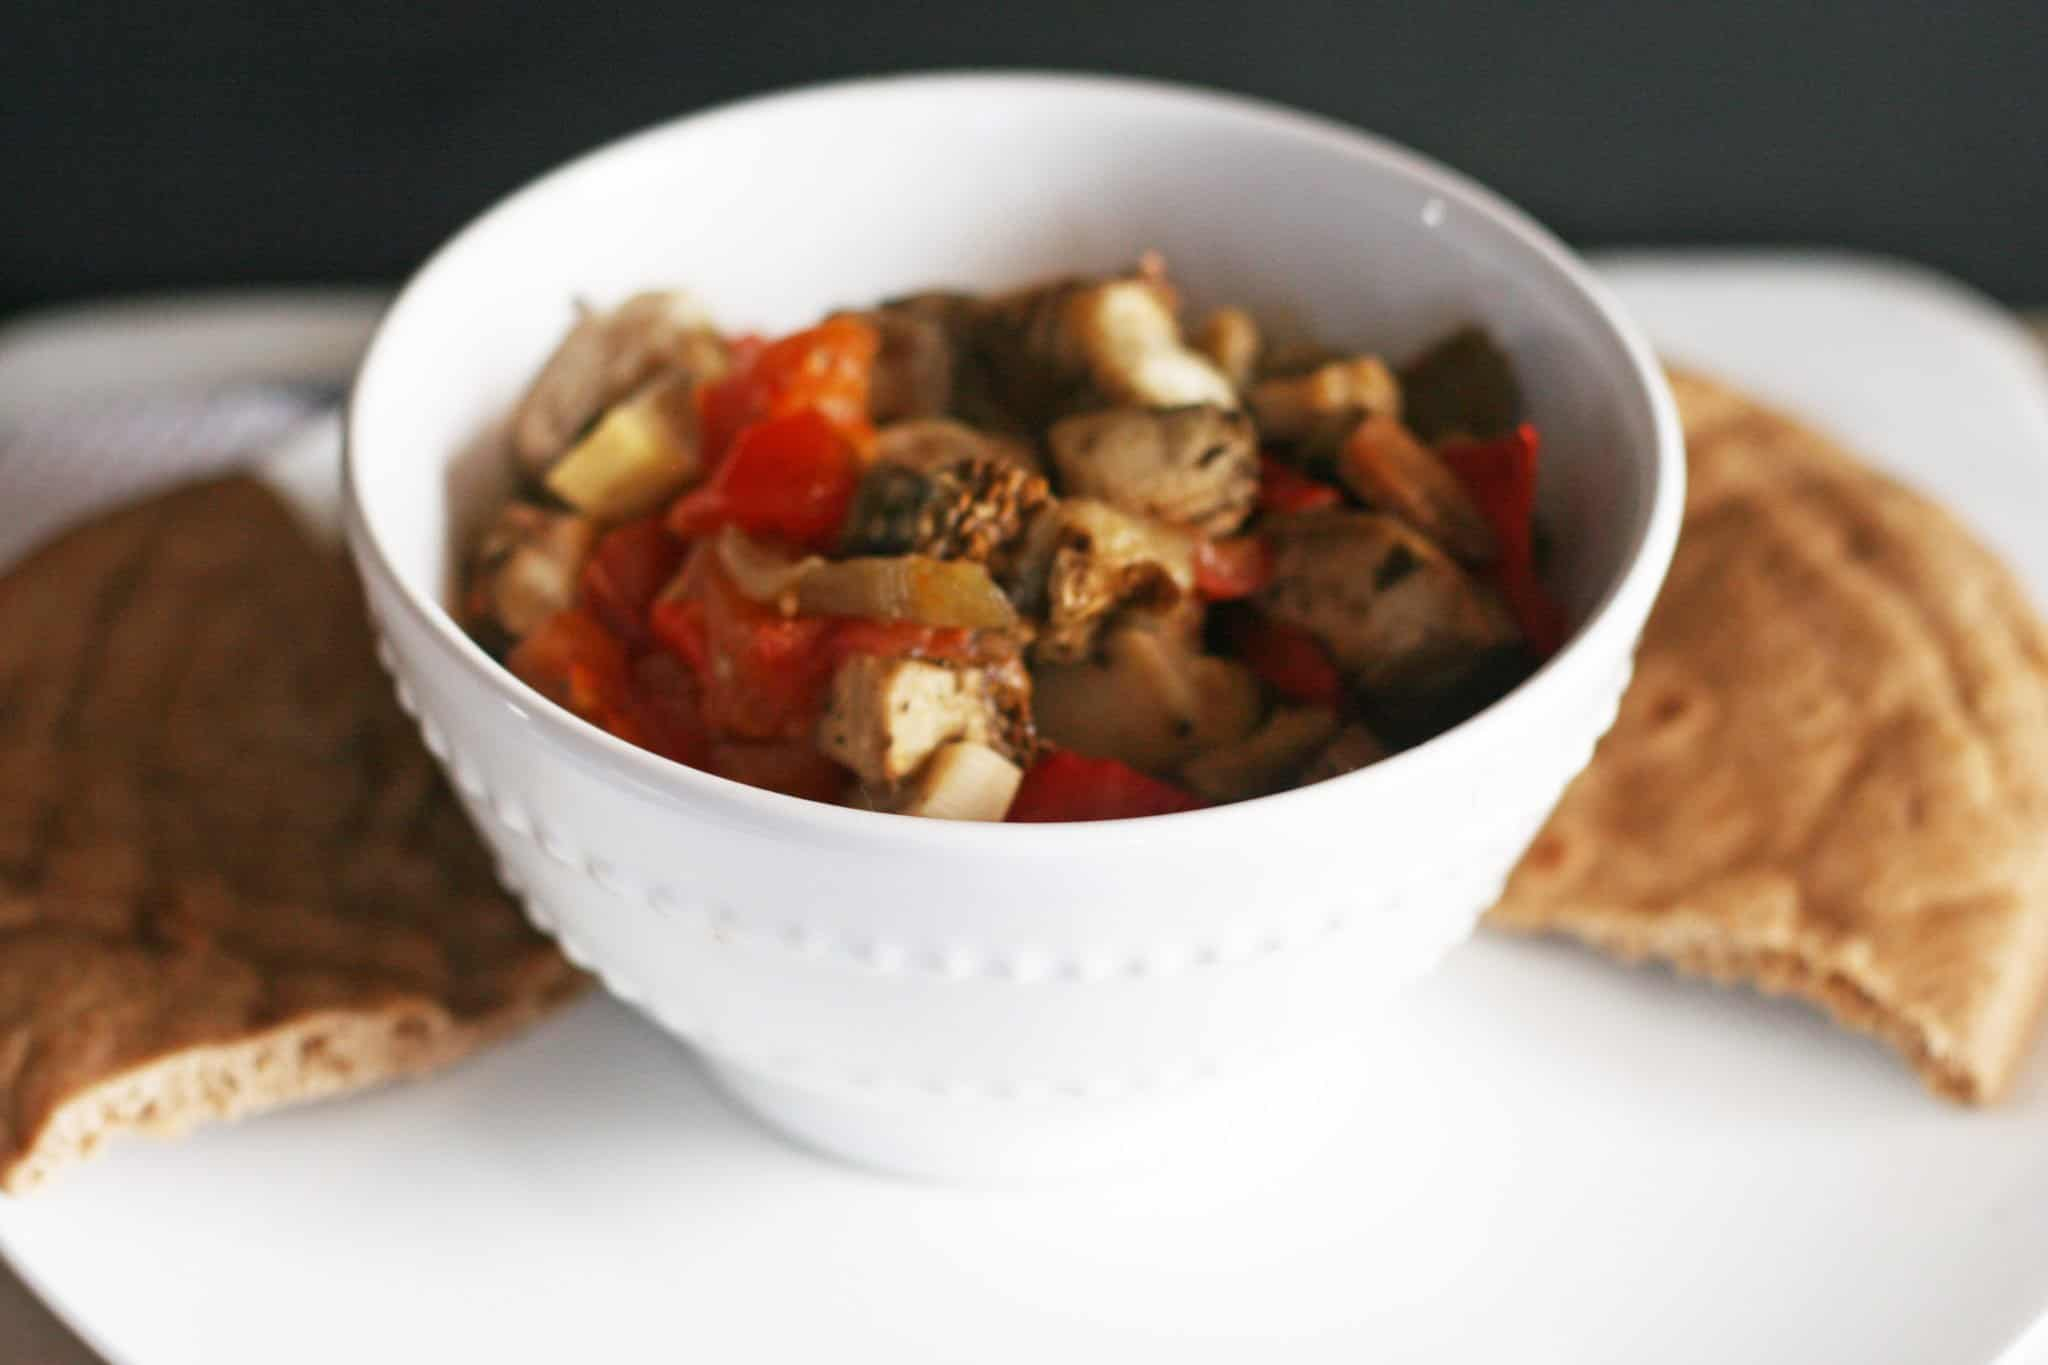 Slow Cooker Mediterranean eggplant, peppers, onions and spices served in a white bowl with warm whole grain pita bread.